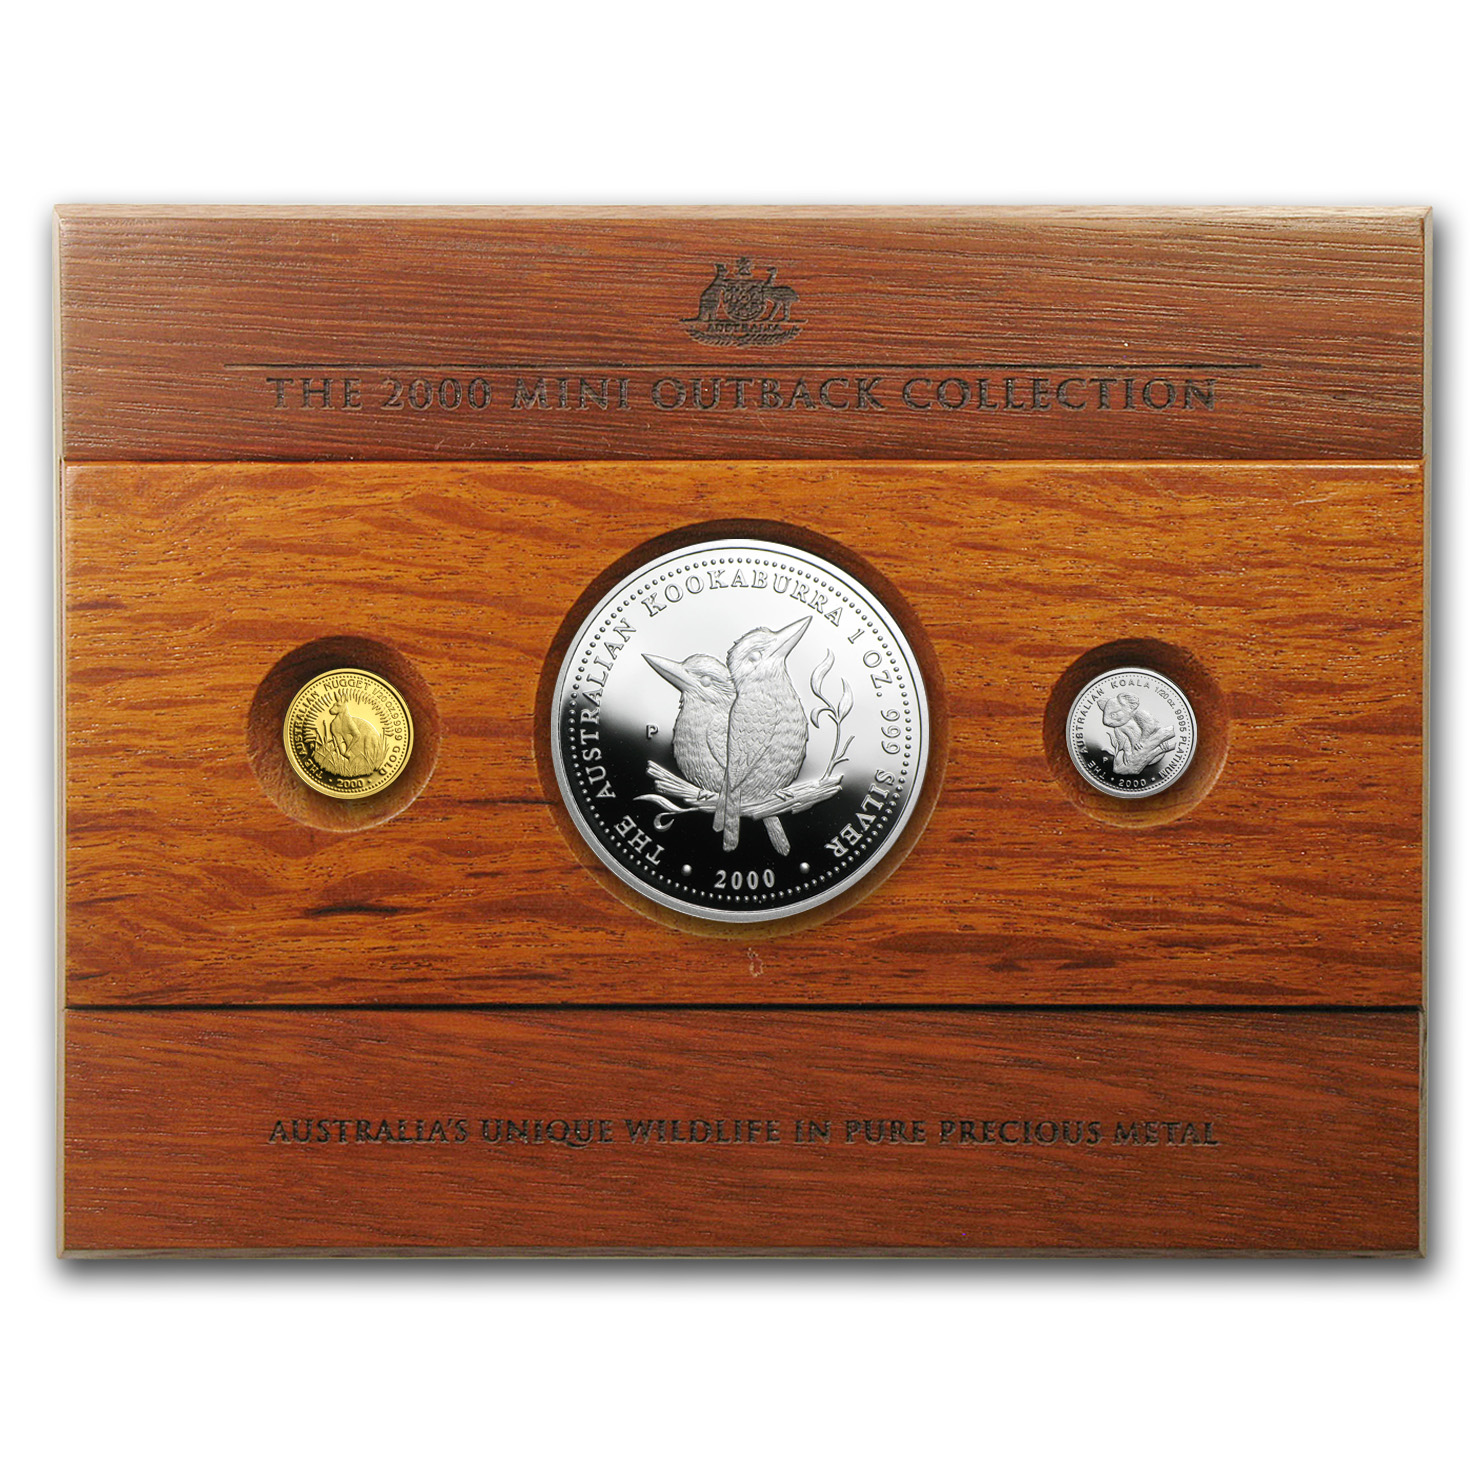 2000 3-Coin Proof Australian Mini Outback Collection